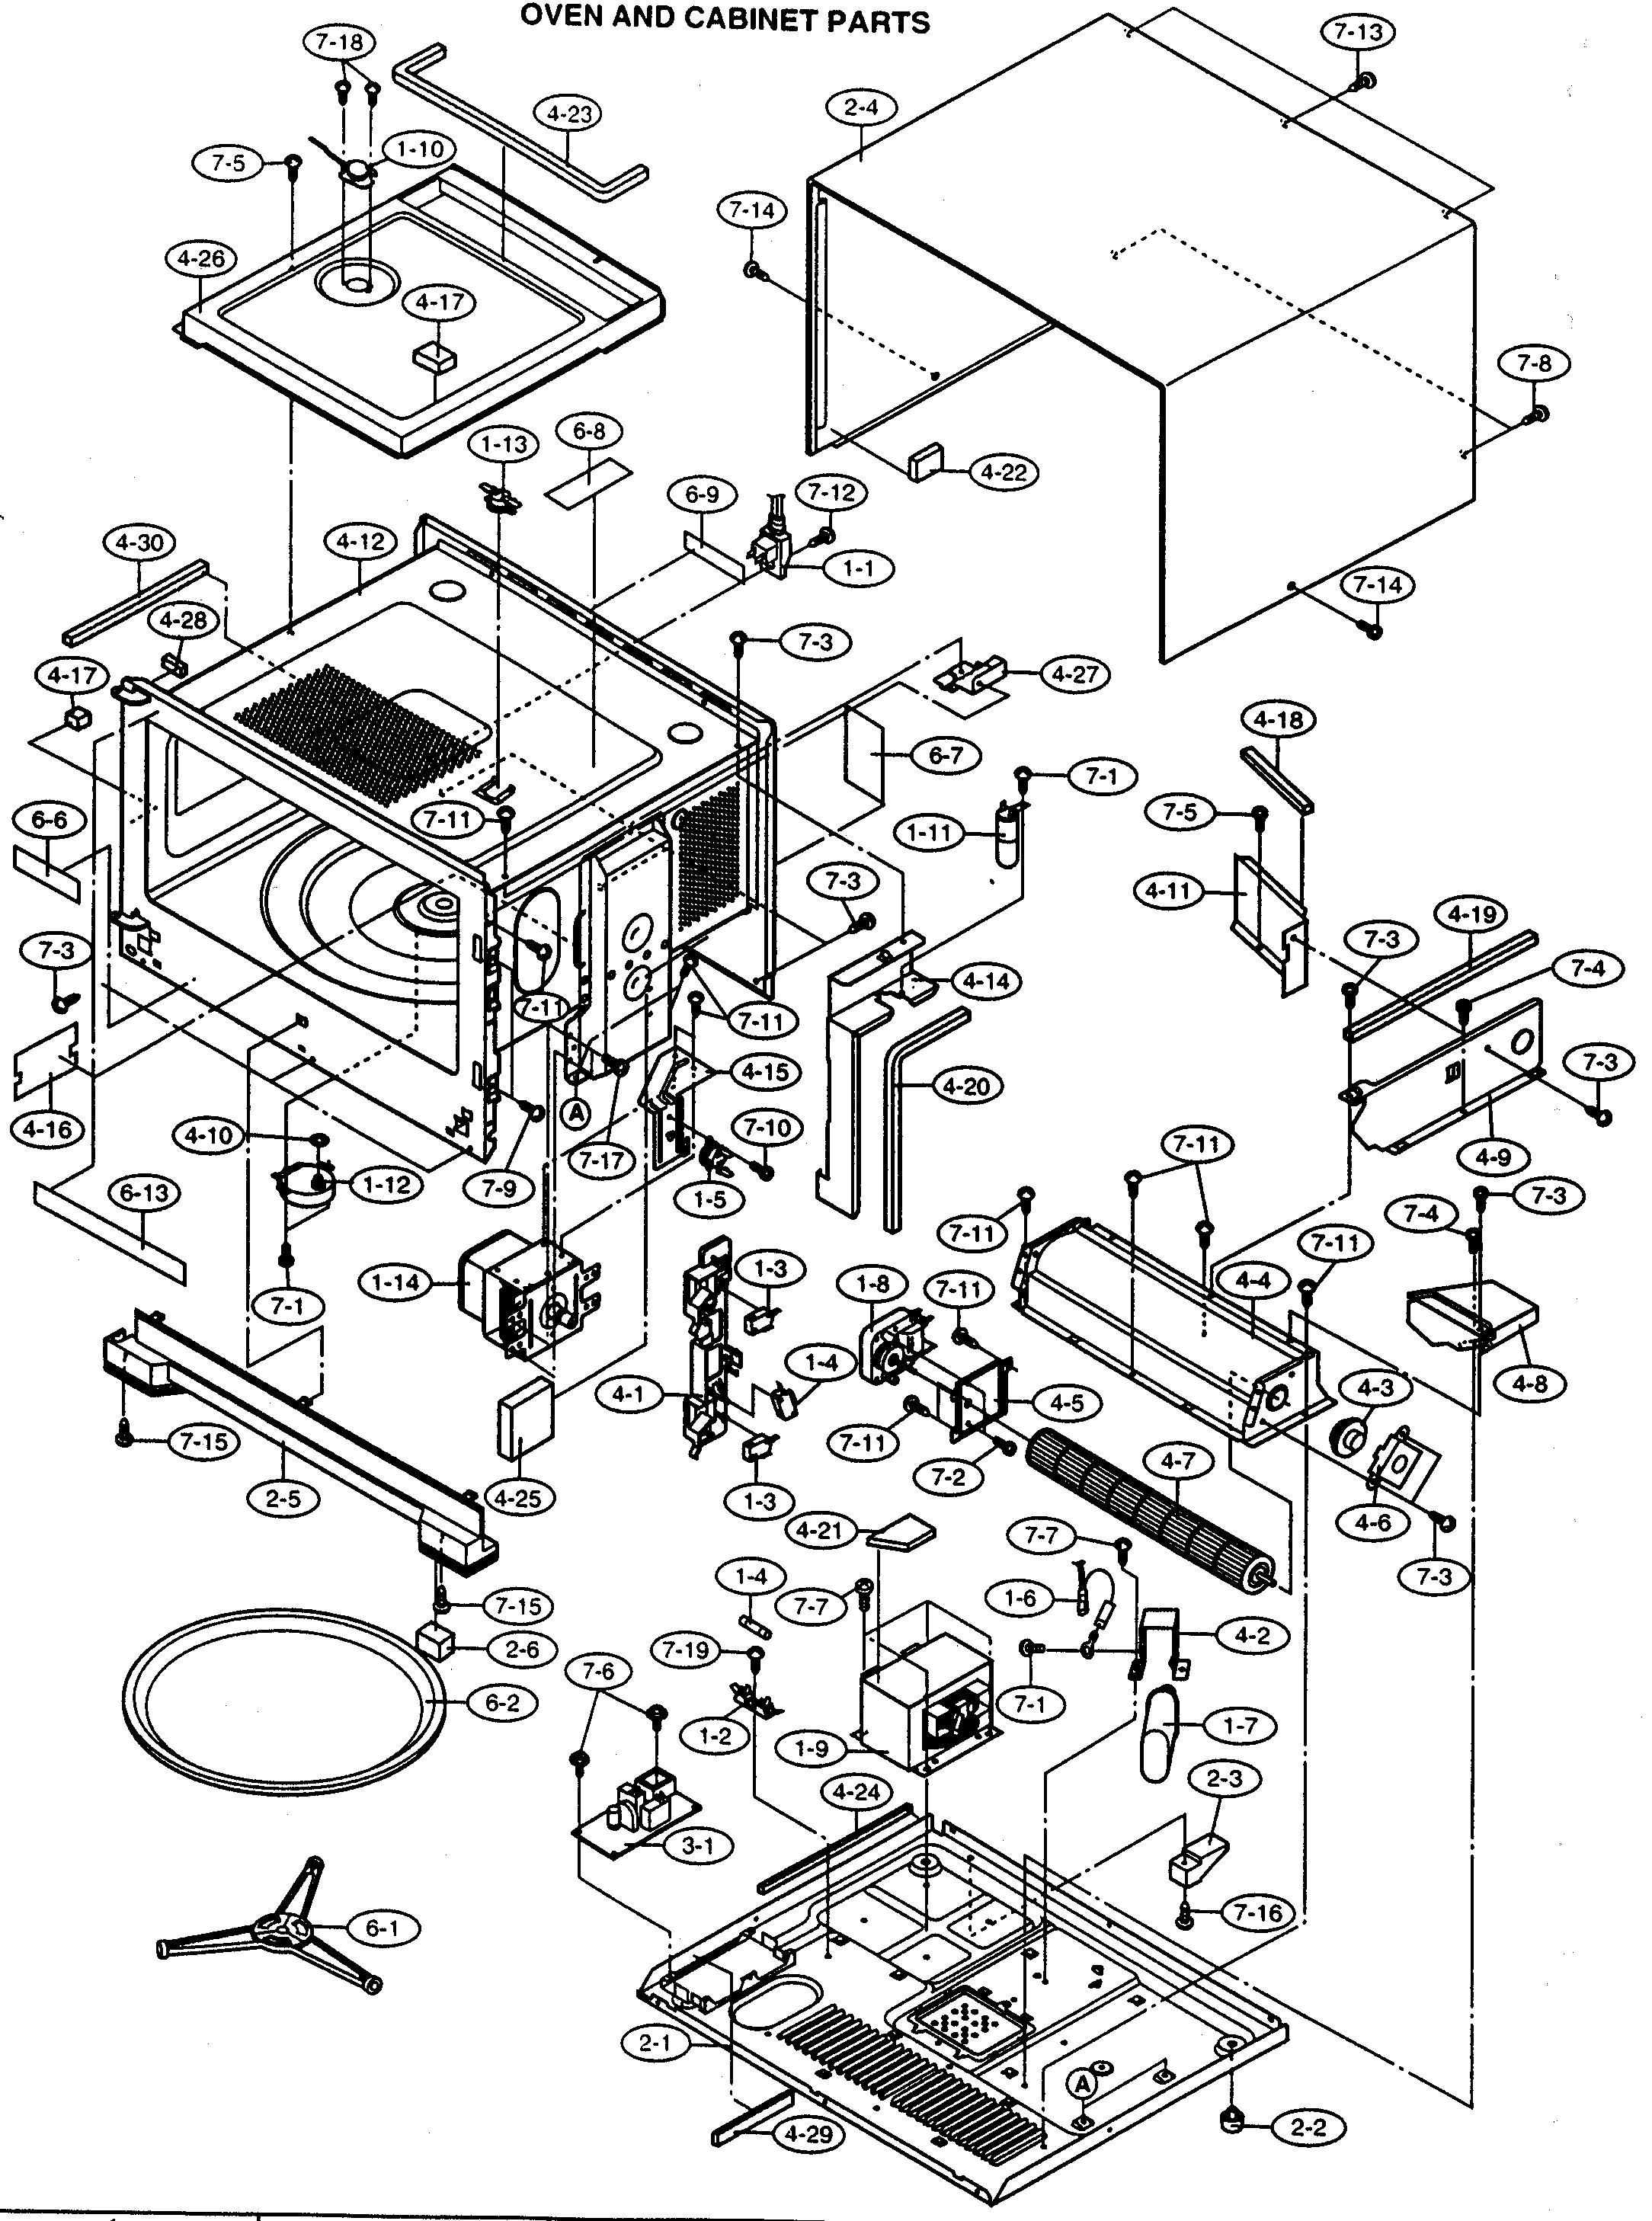 Sharp Microwave R 21ltf Wiring Diagram Auto Electrical Knock Sensor 1988 Jimmy Related With